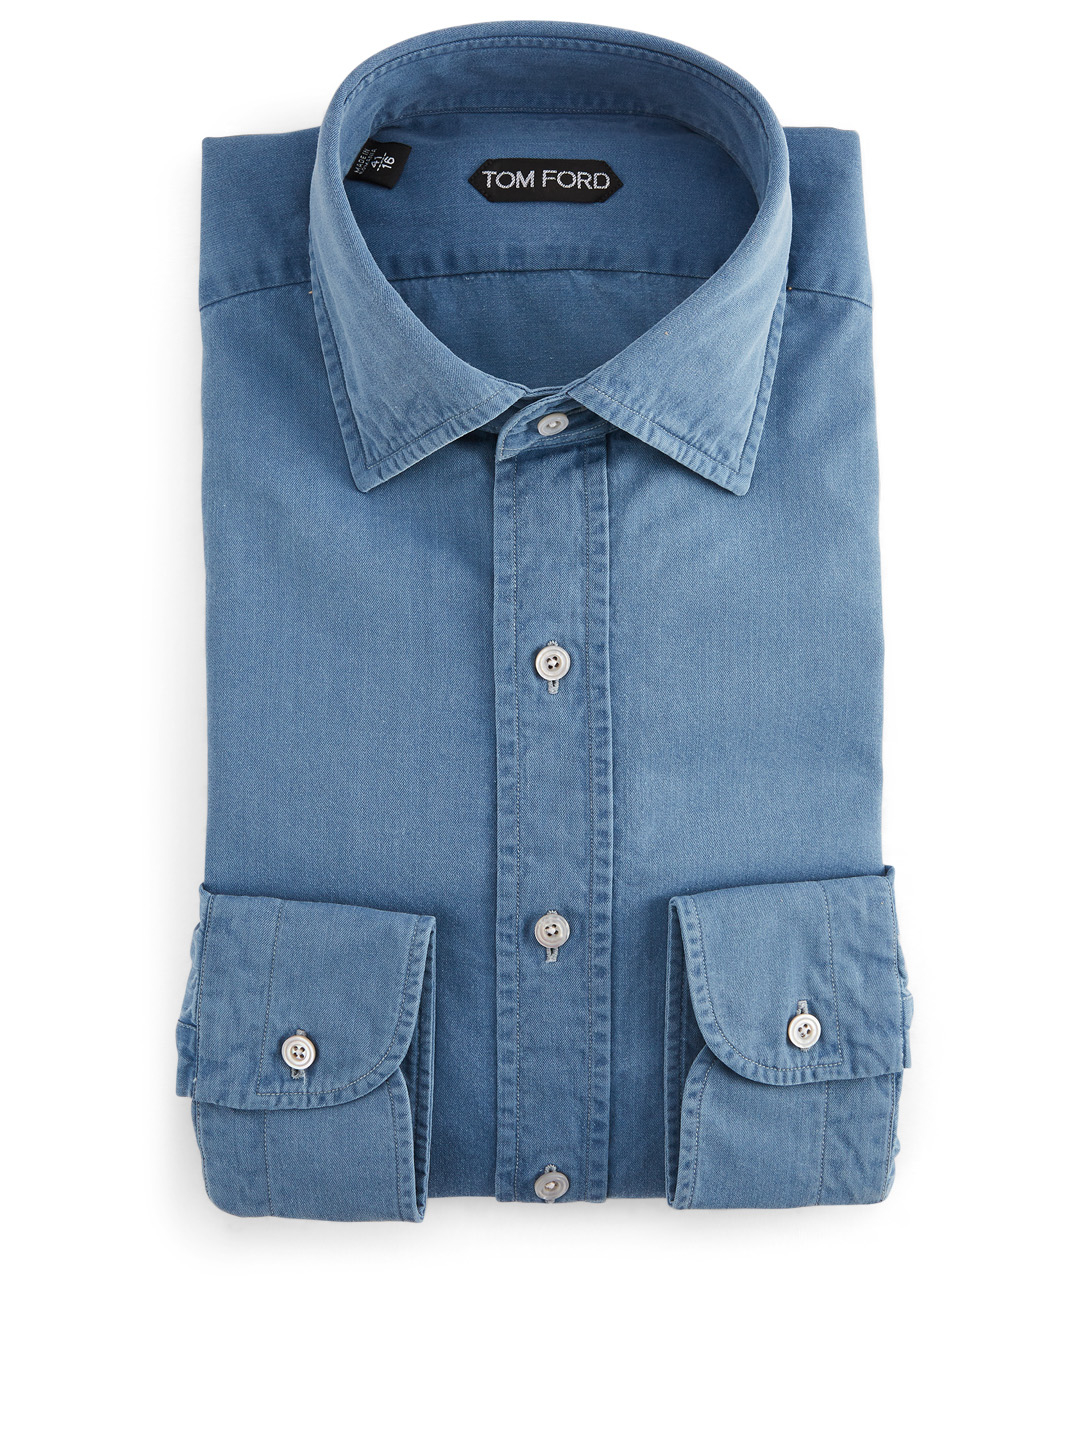 TOM FORD Denim Shirt Men's Blue